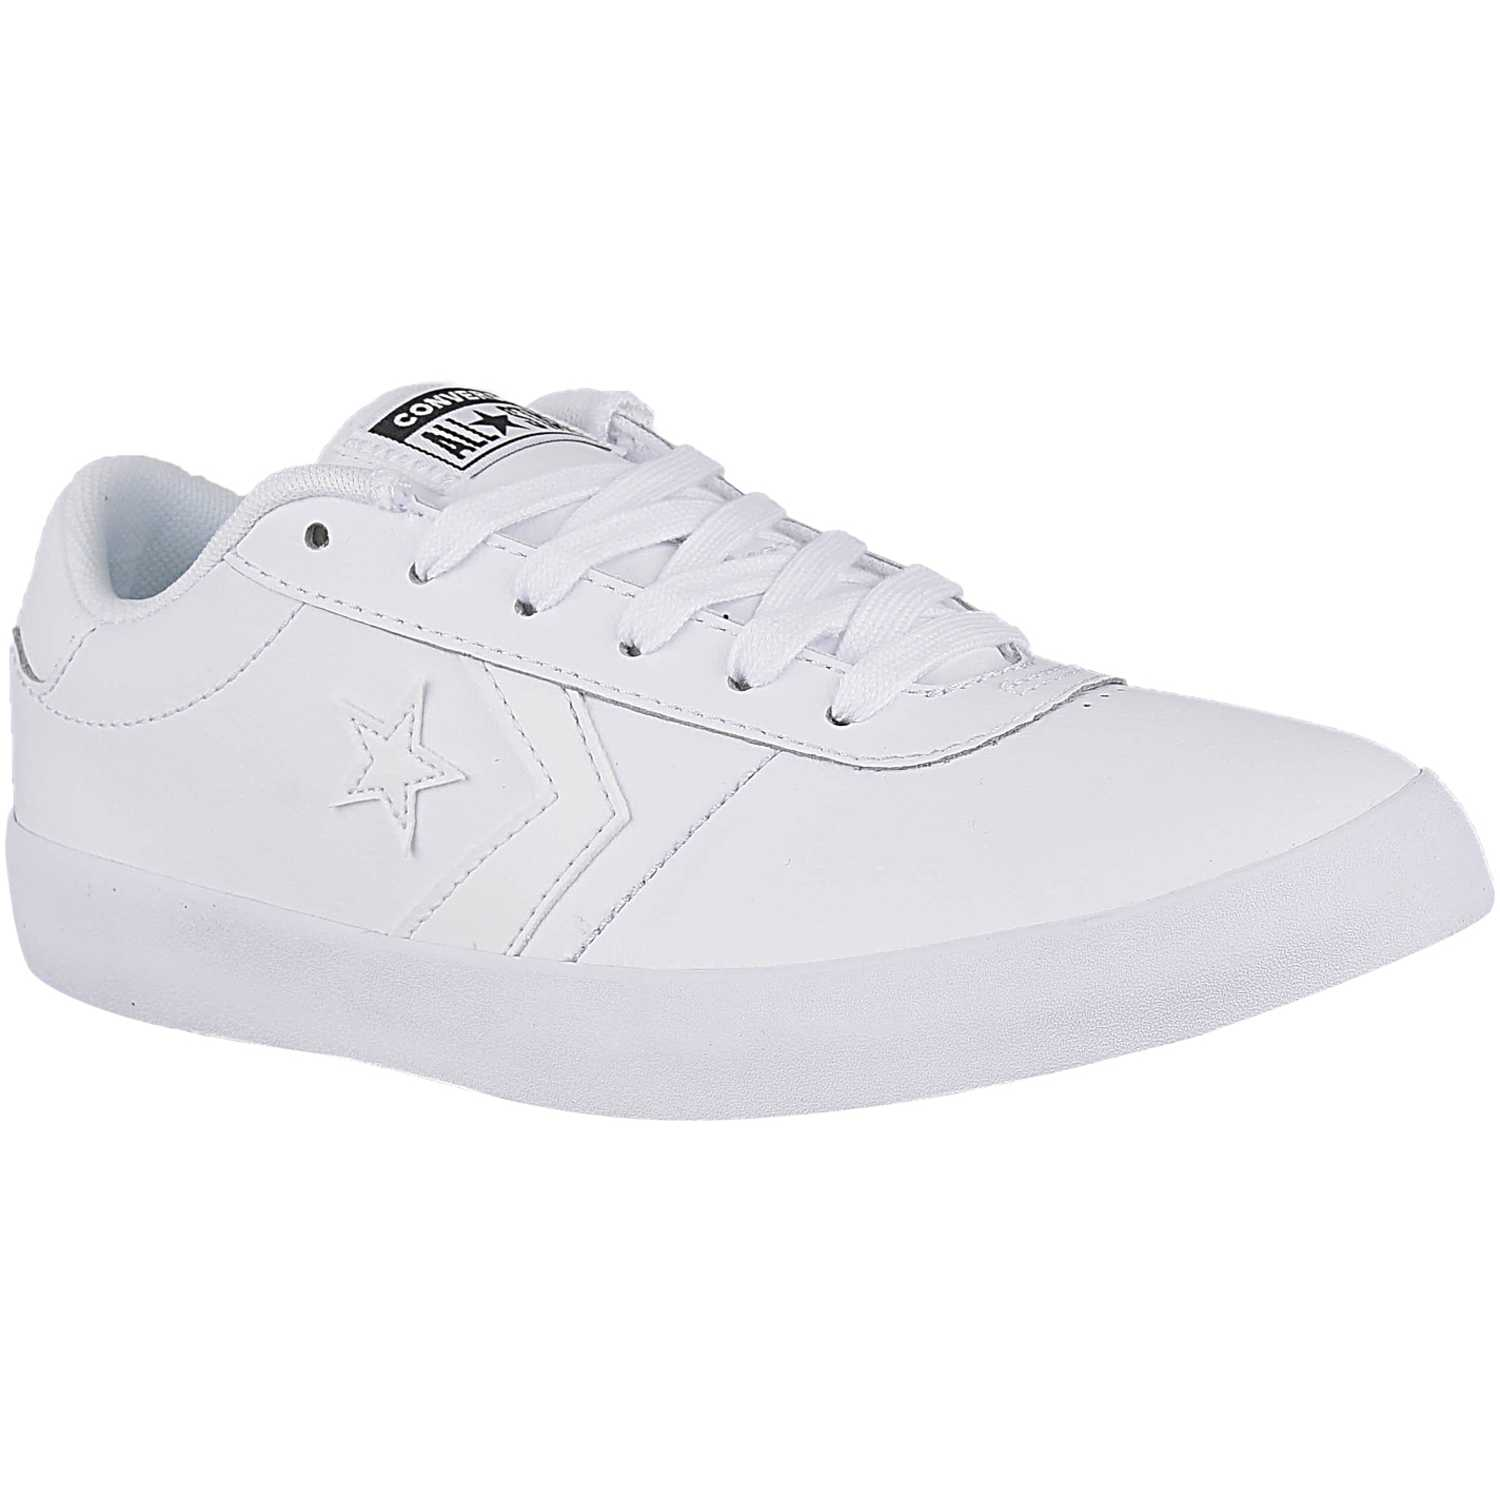 Converse point star leather Blanco Walking